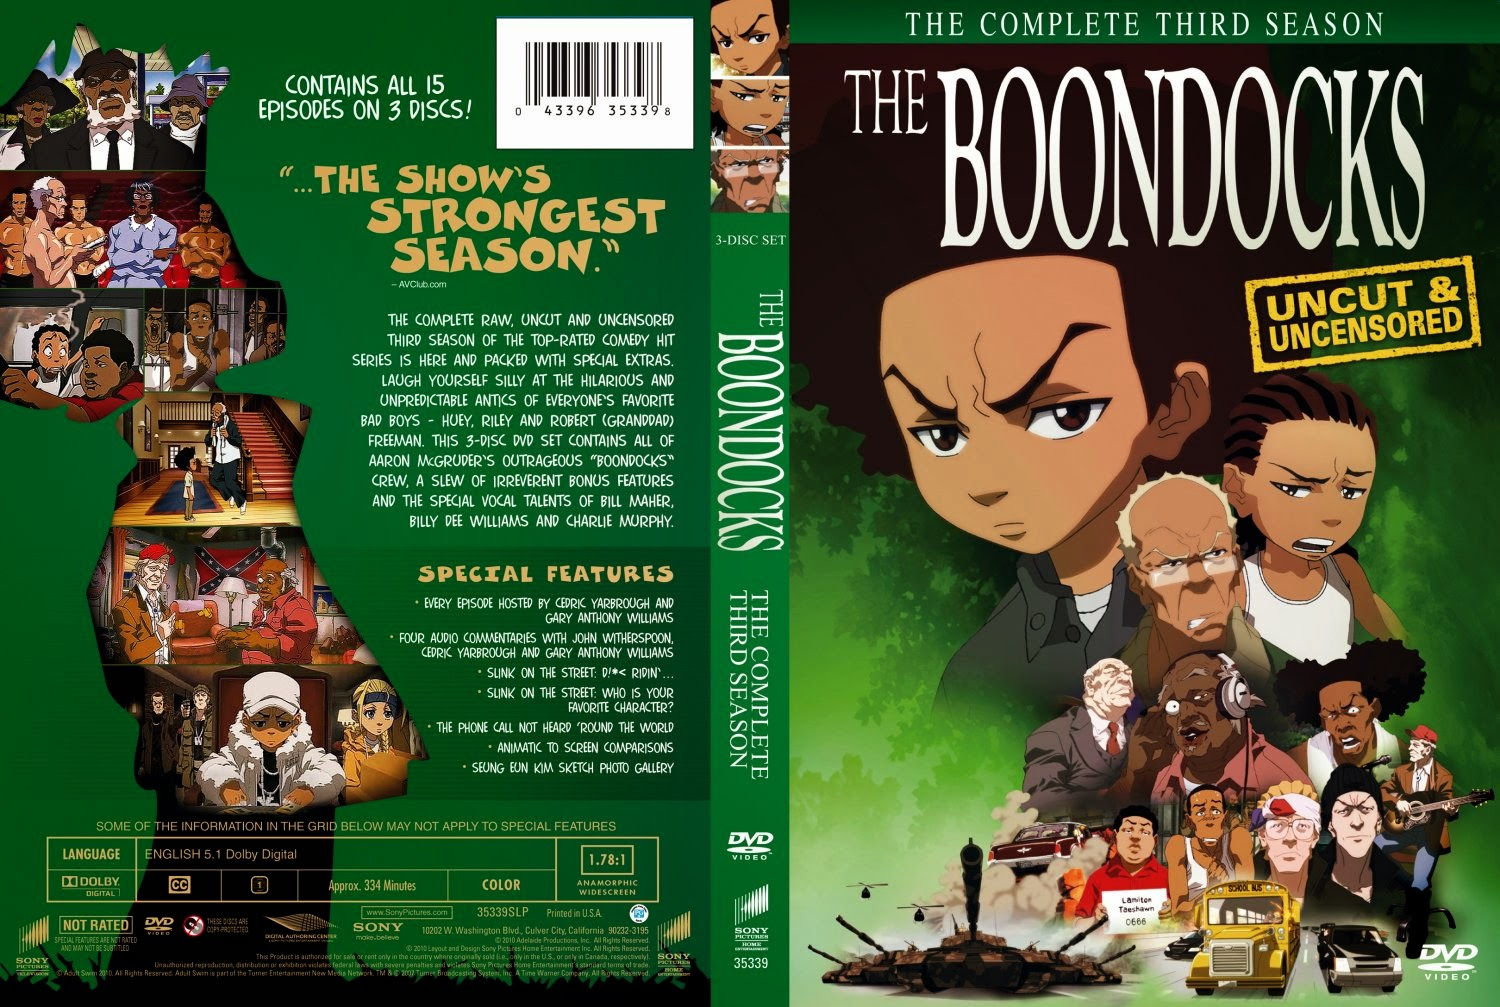 1 SAISON THE TÉLÉCHARGER BOONDOCKS